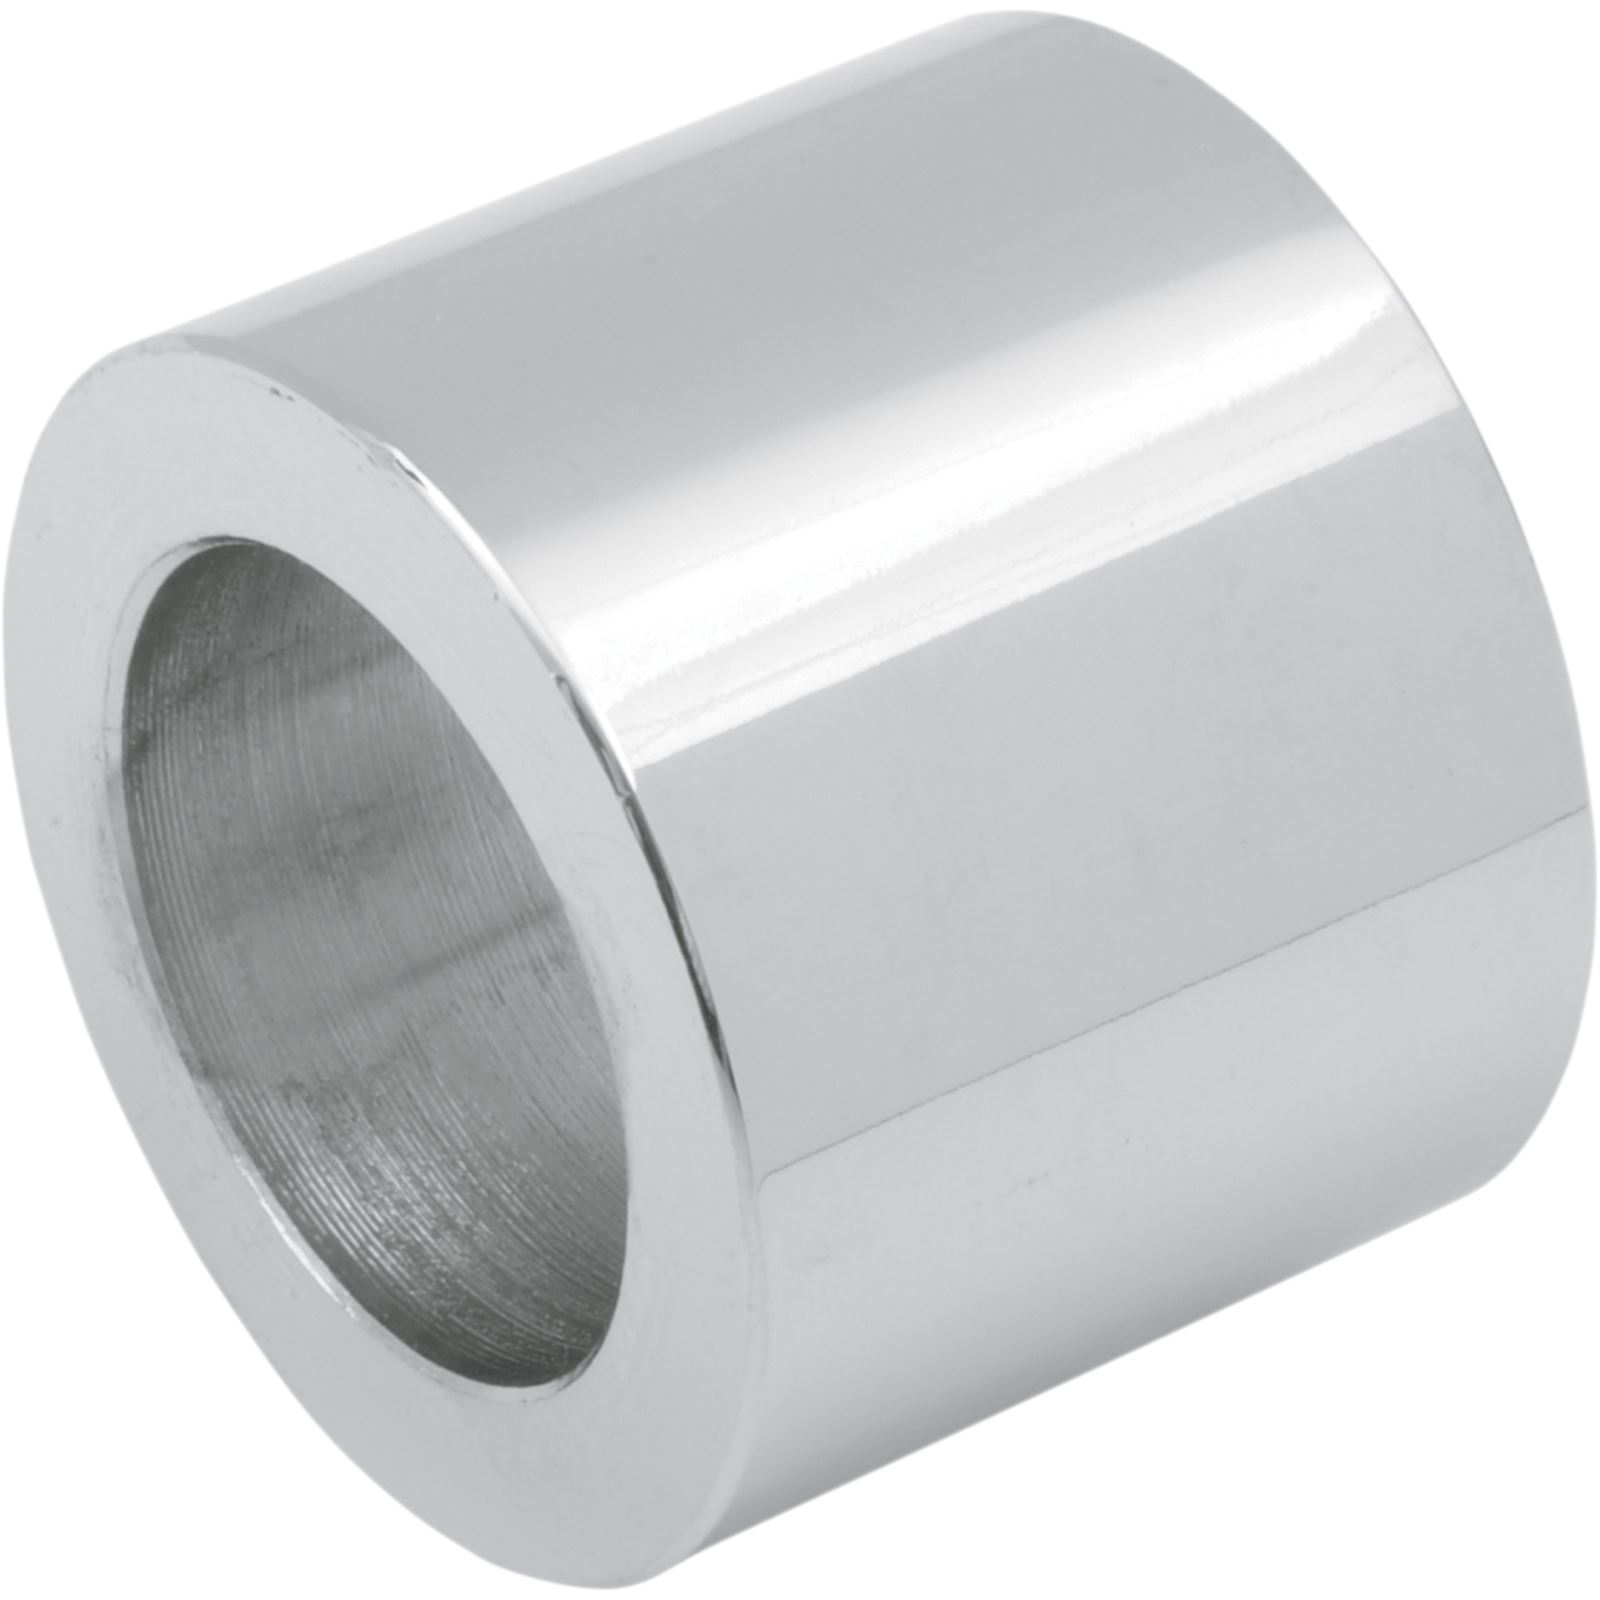 """Colony Machine Spacer - 25mm 1.48""""X1.15"""""""